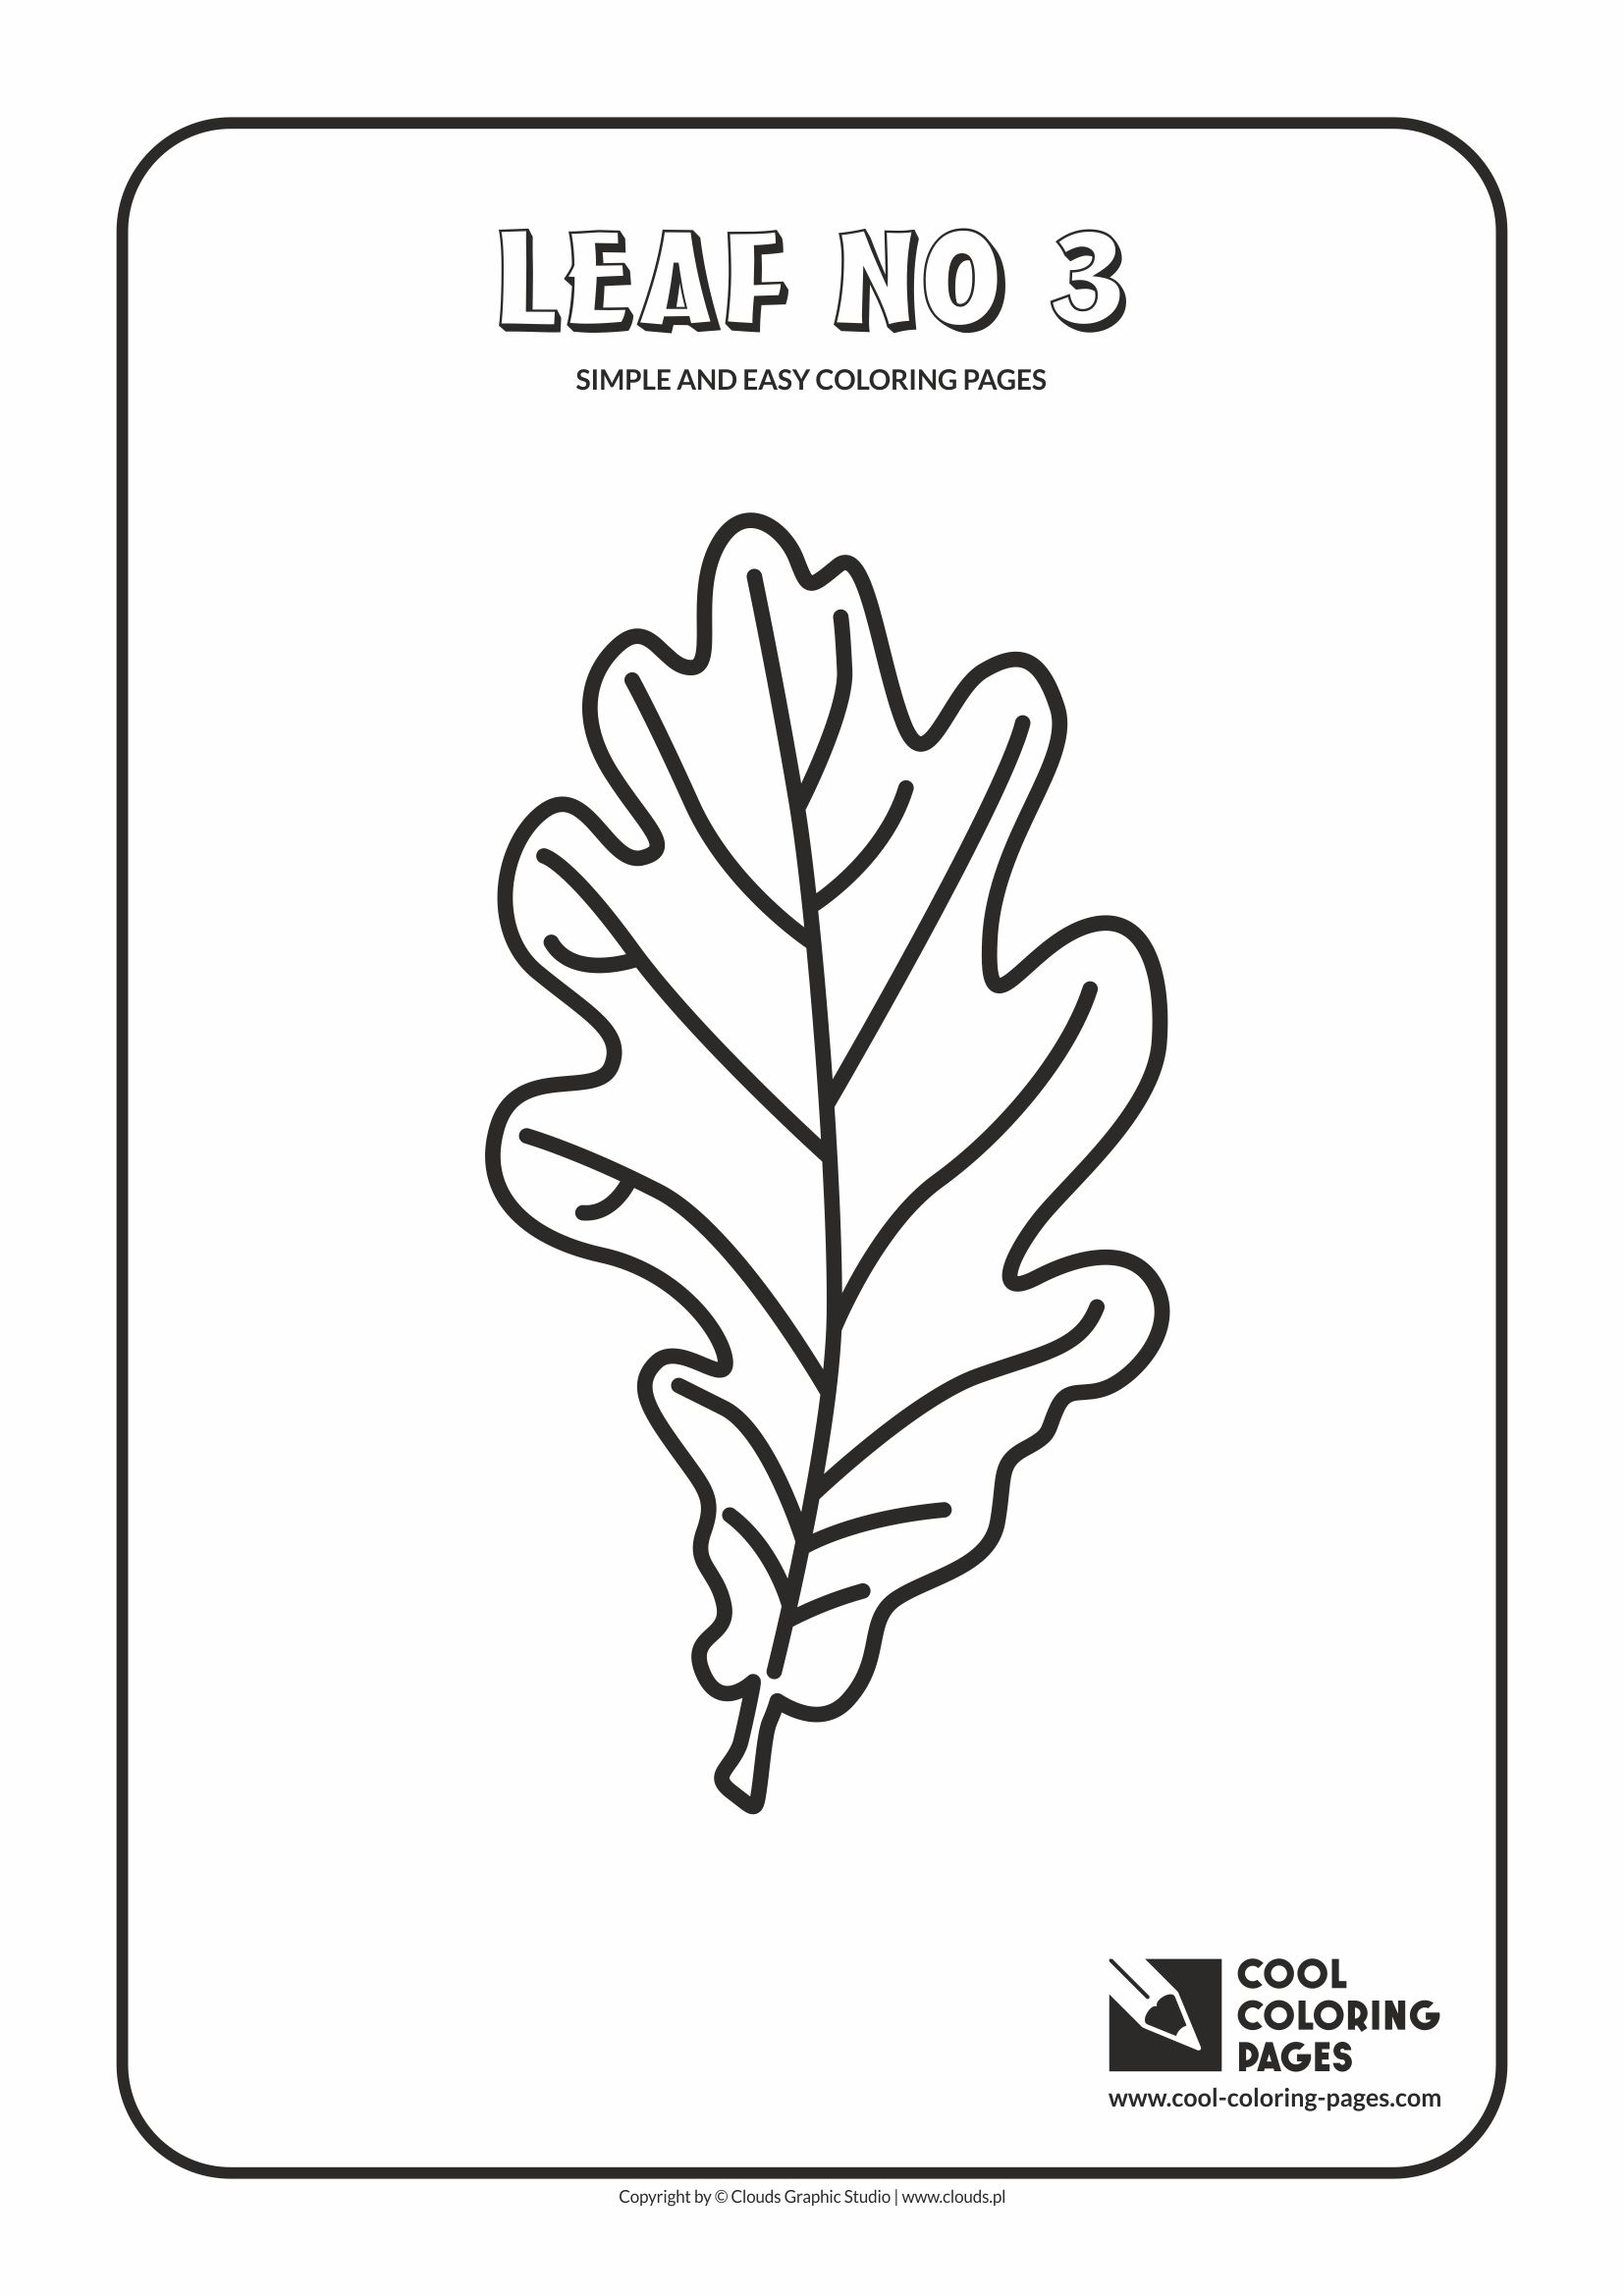 Simple and easy coloring pages for toddlers - Leaf no 3